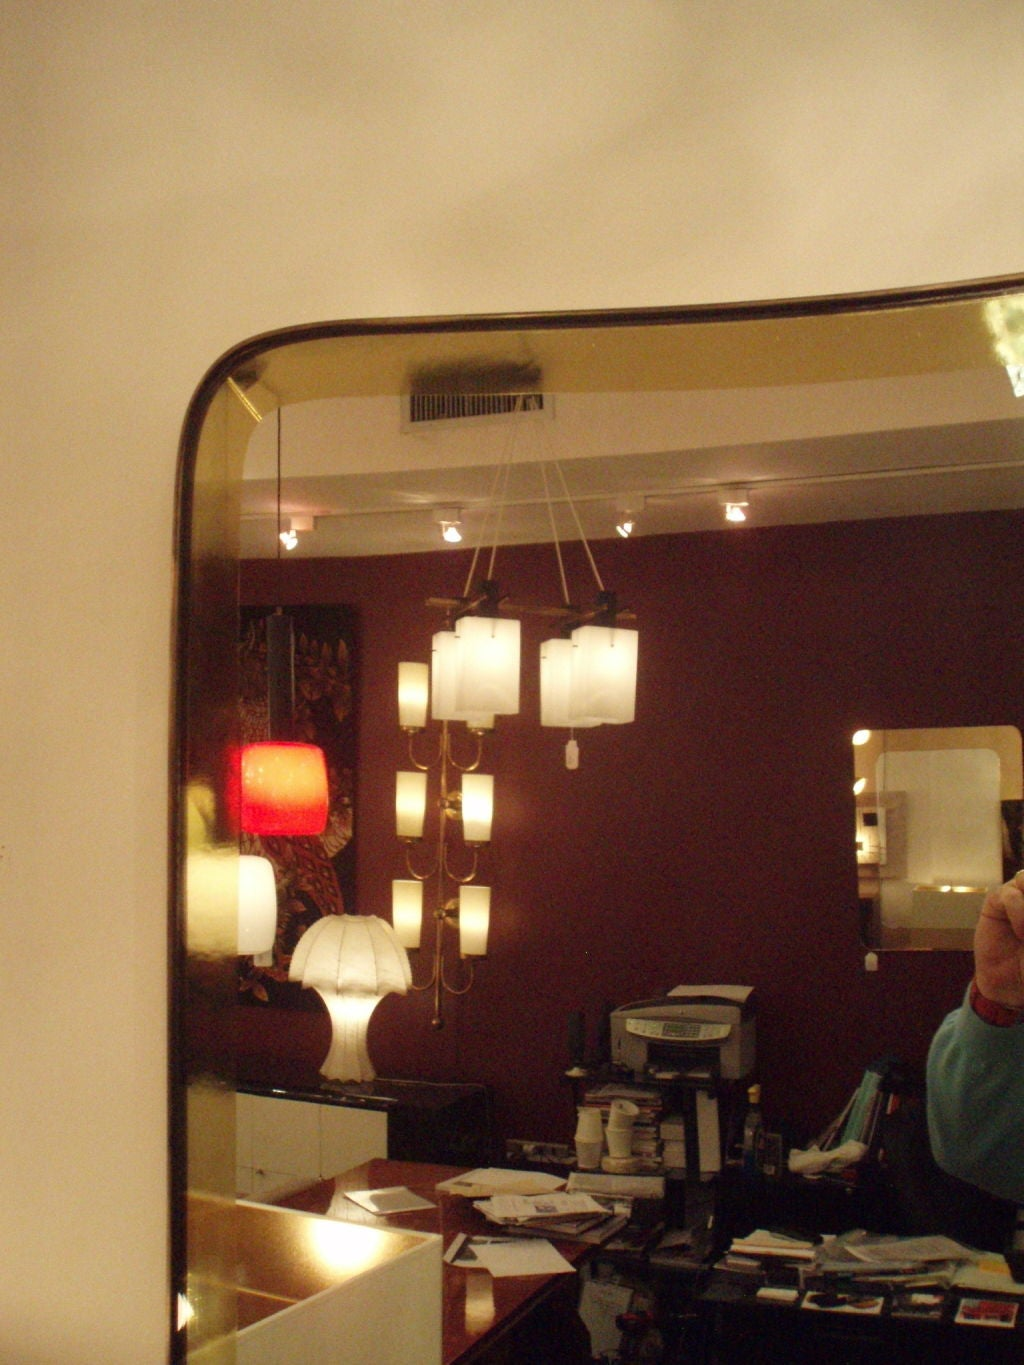 A Fabulous Large Wall Mirror by Max Ingrand for Fontana Arte at ...